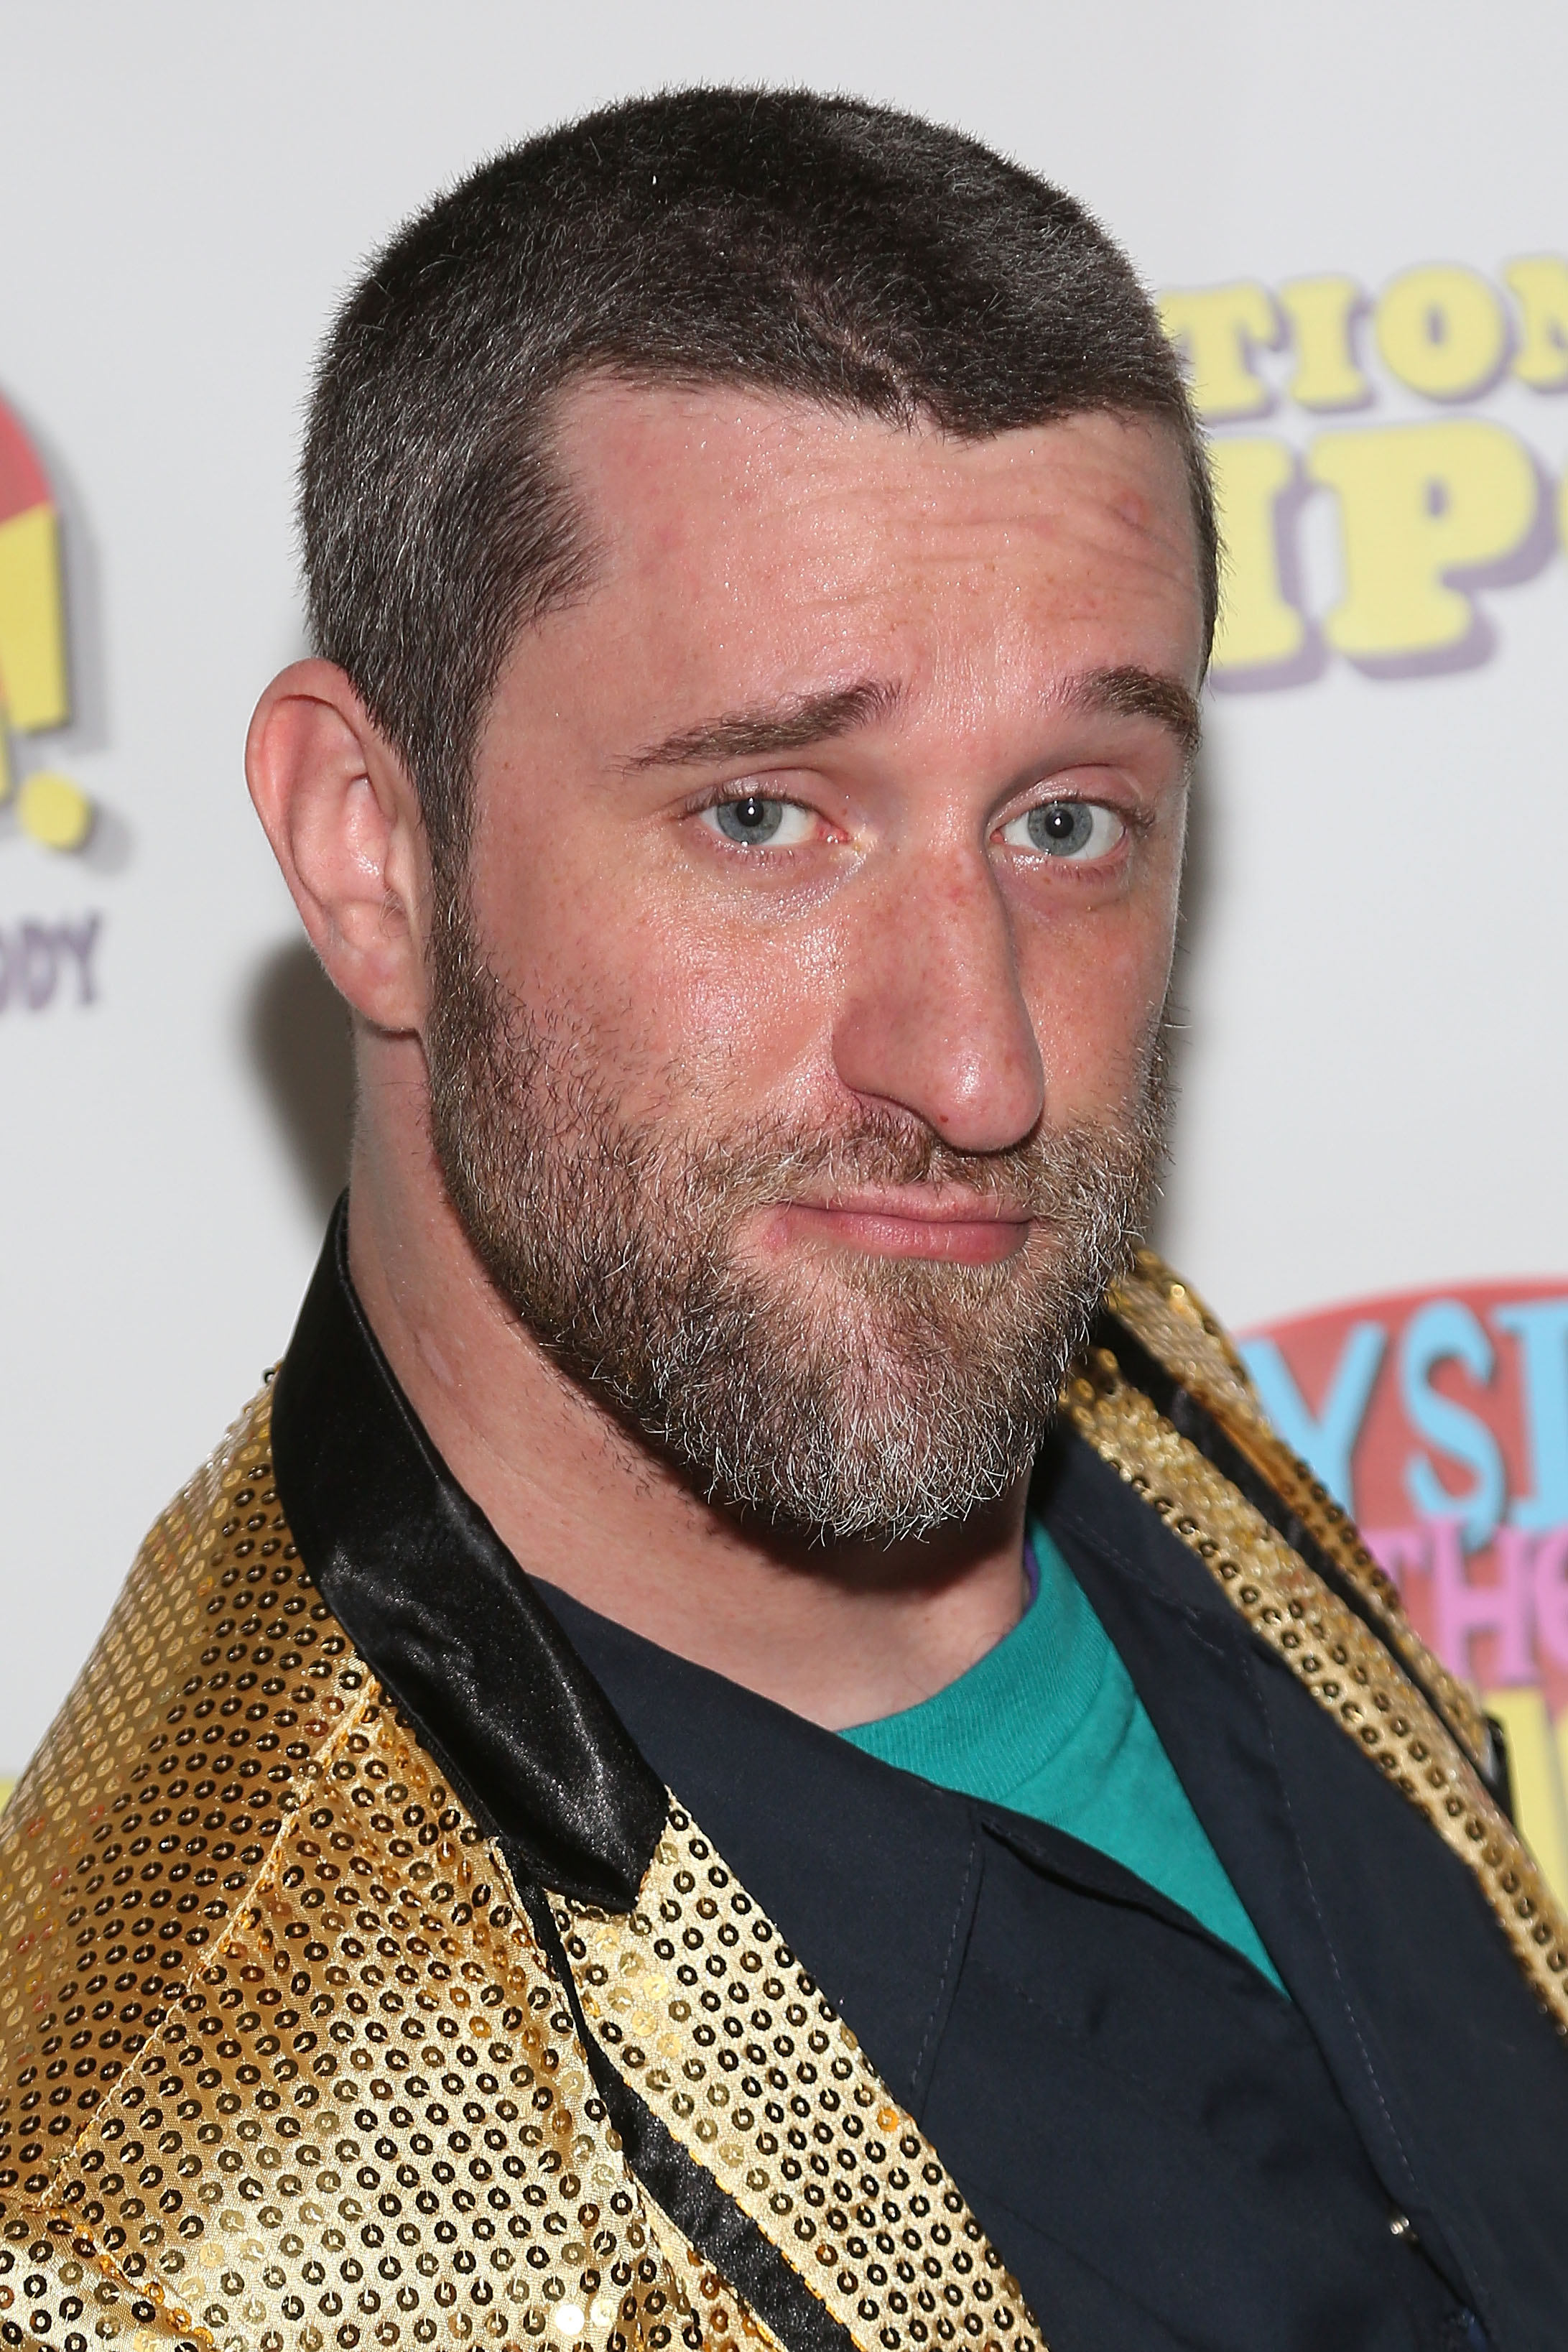 Actor Dustin Diamond attends the sold-out opening performance of  Bayside! The Musical!  at Theatre 80 St. Marks on Sept. 11, 2014 in New York City.